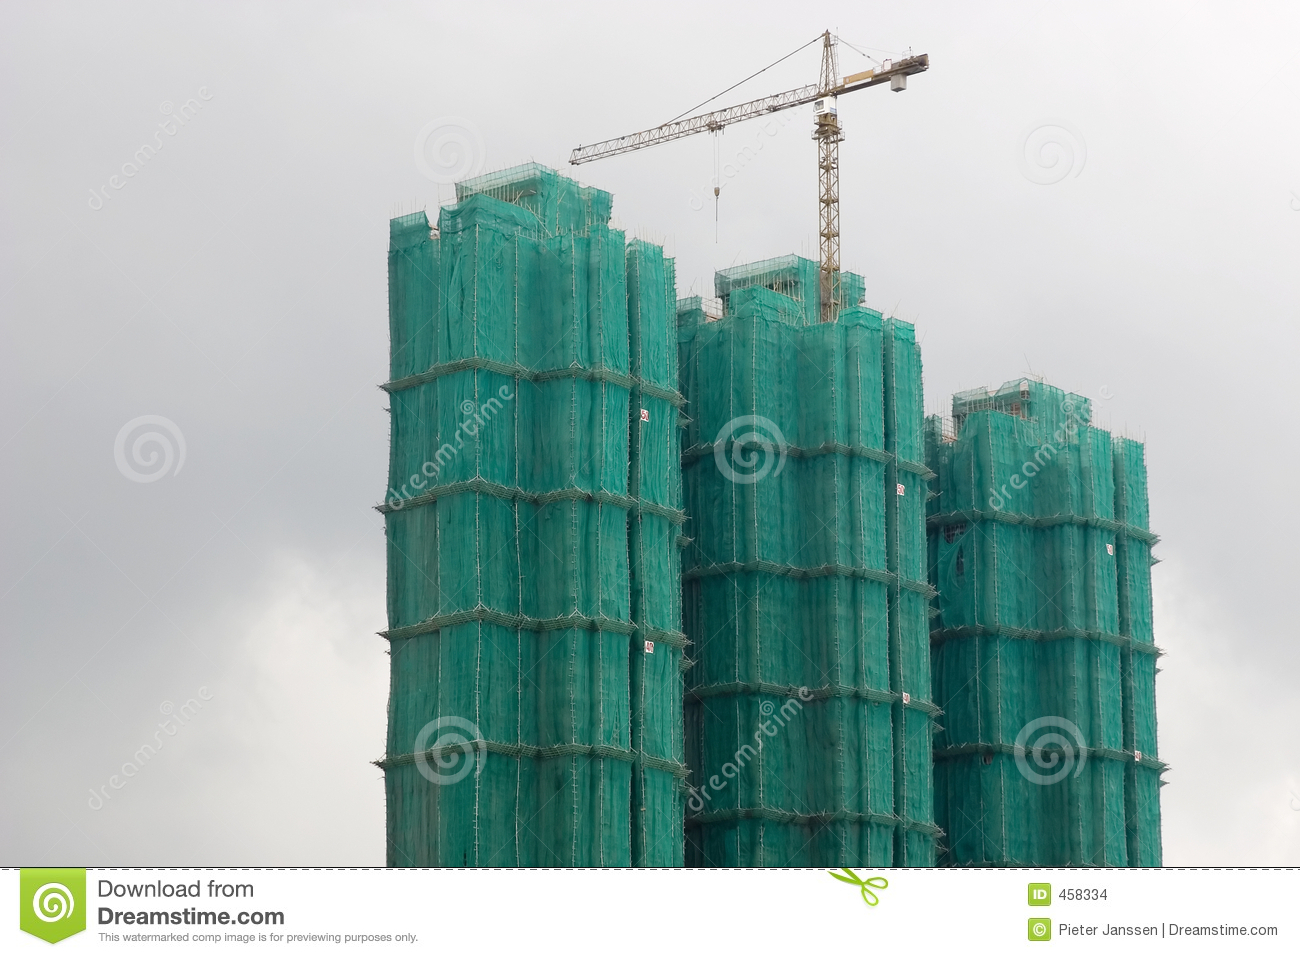 Constructing residential flats